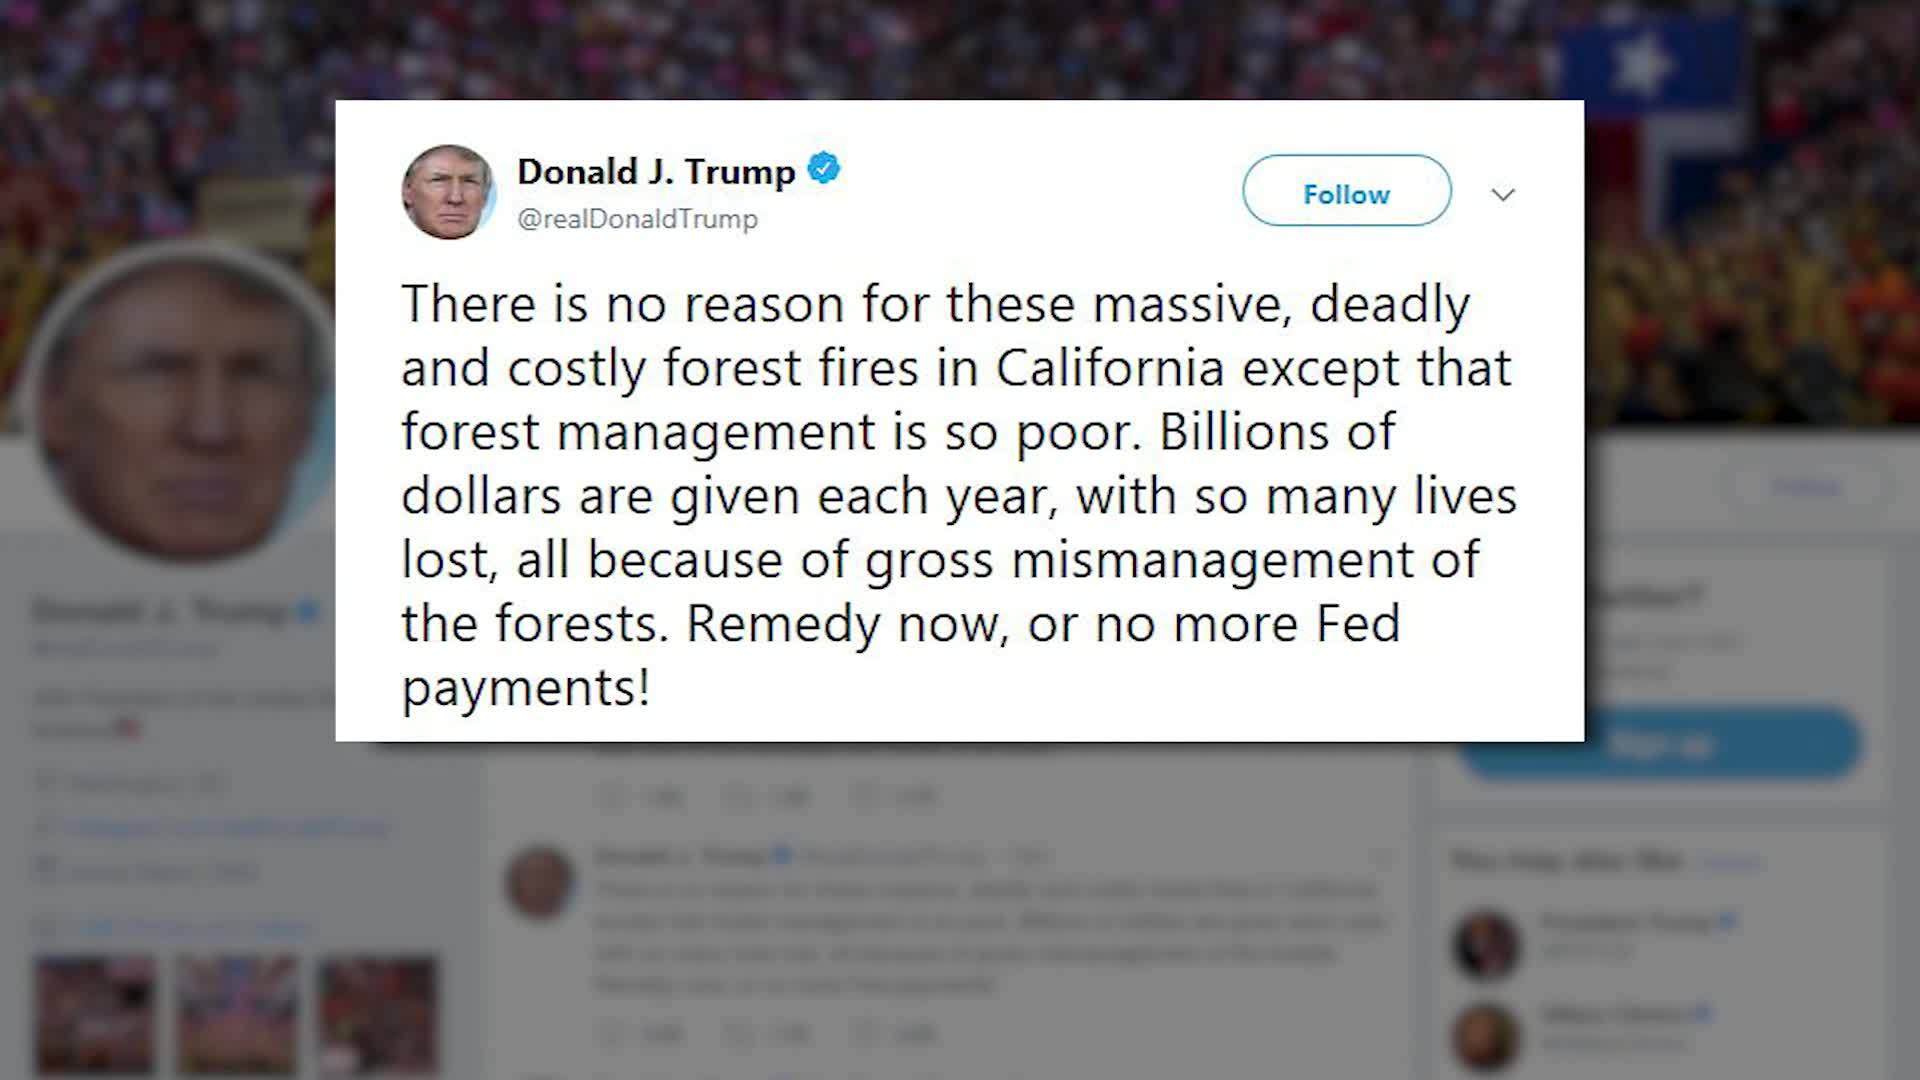 Trump blames mismanagement for California wildfires; threatens to withhold funding